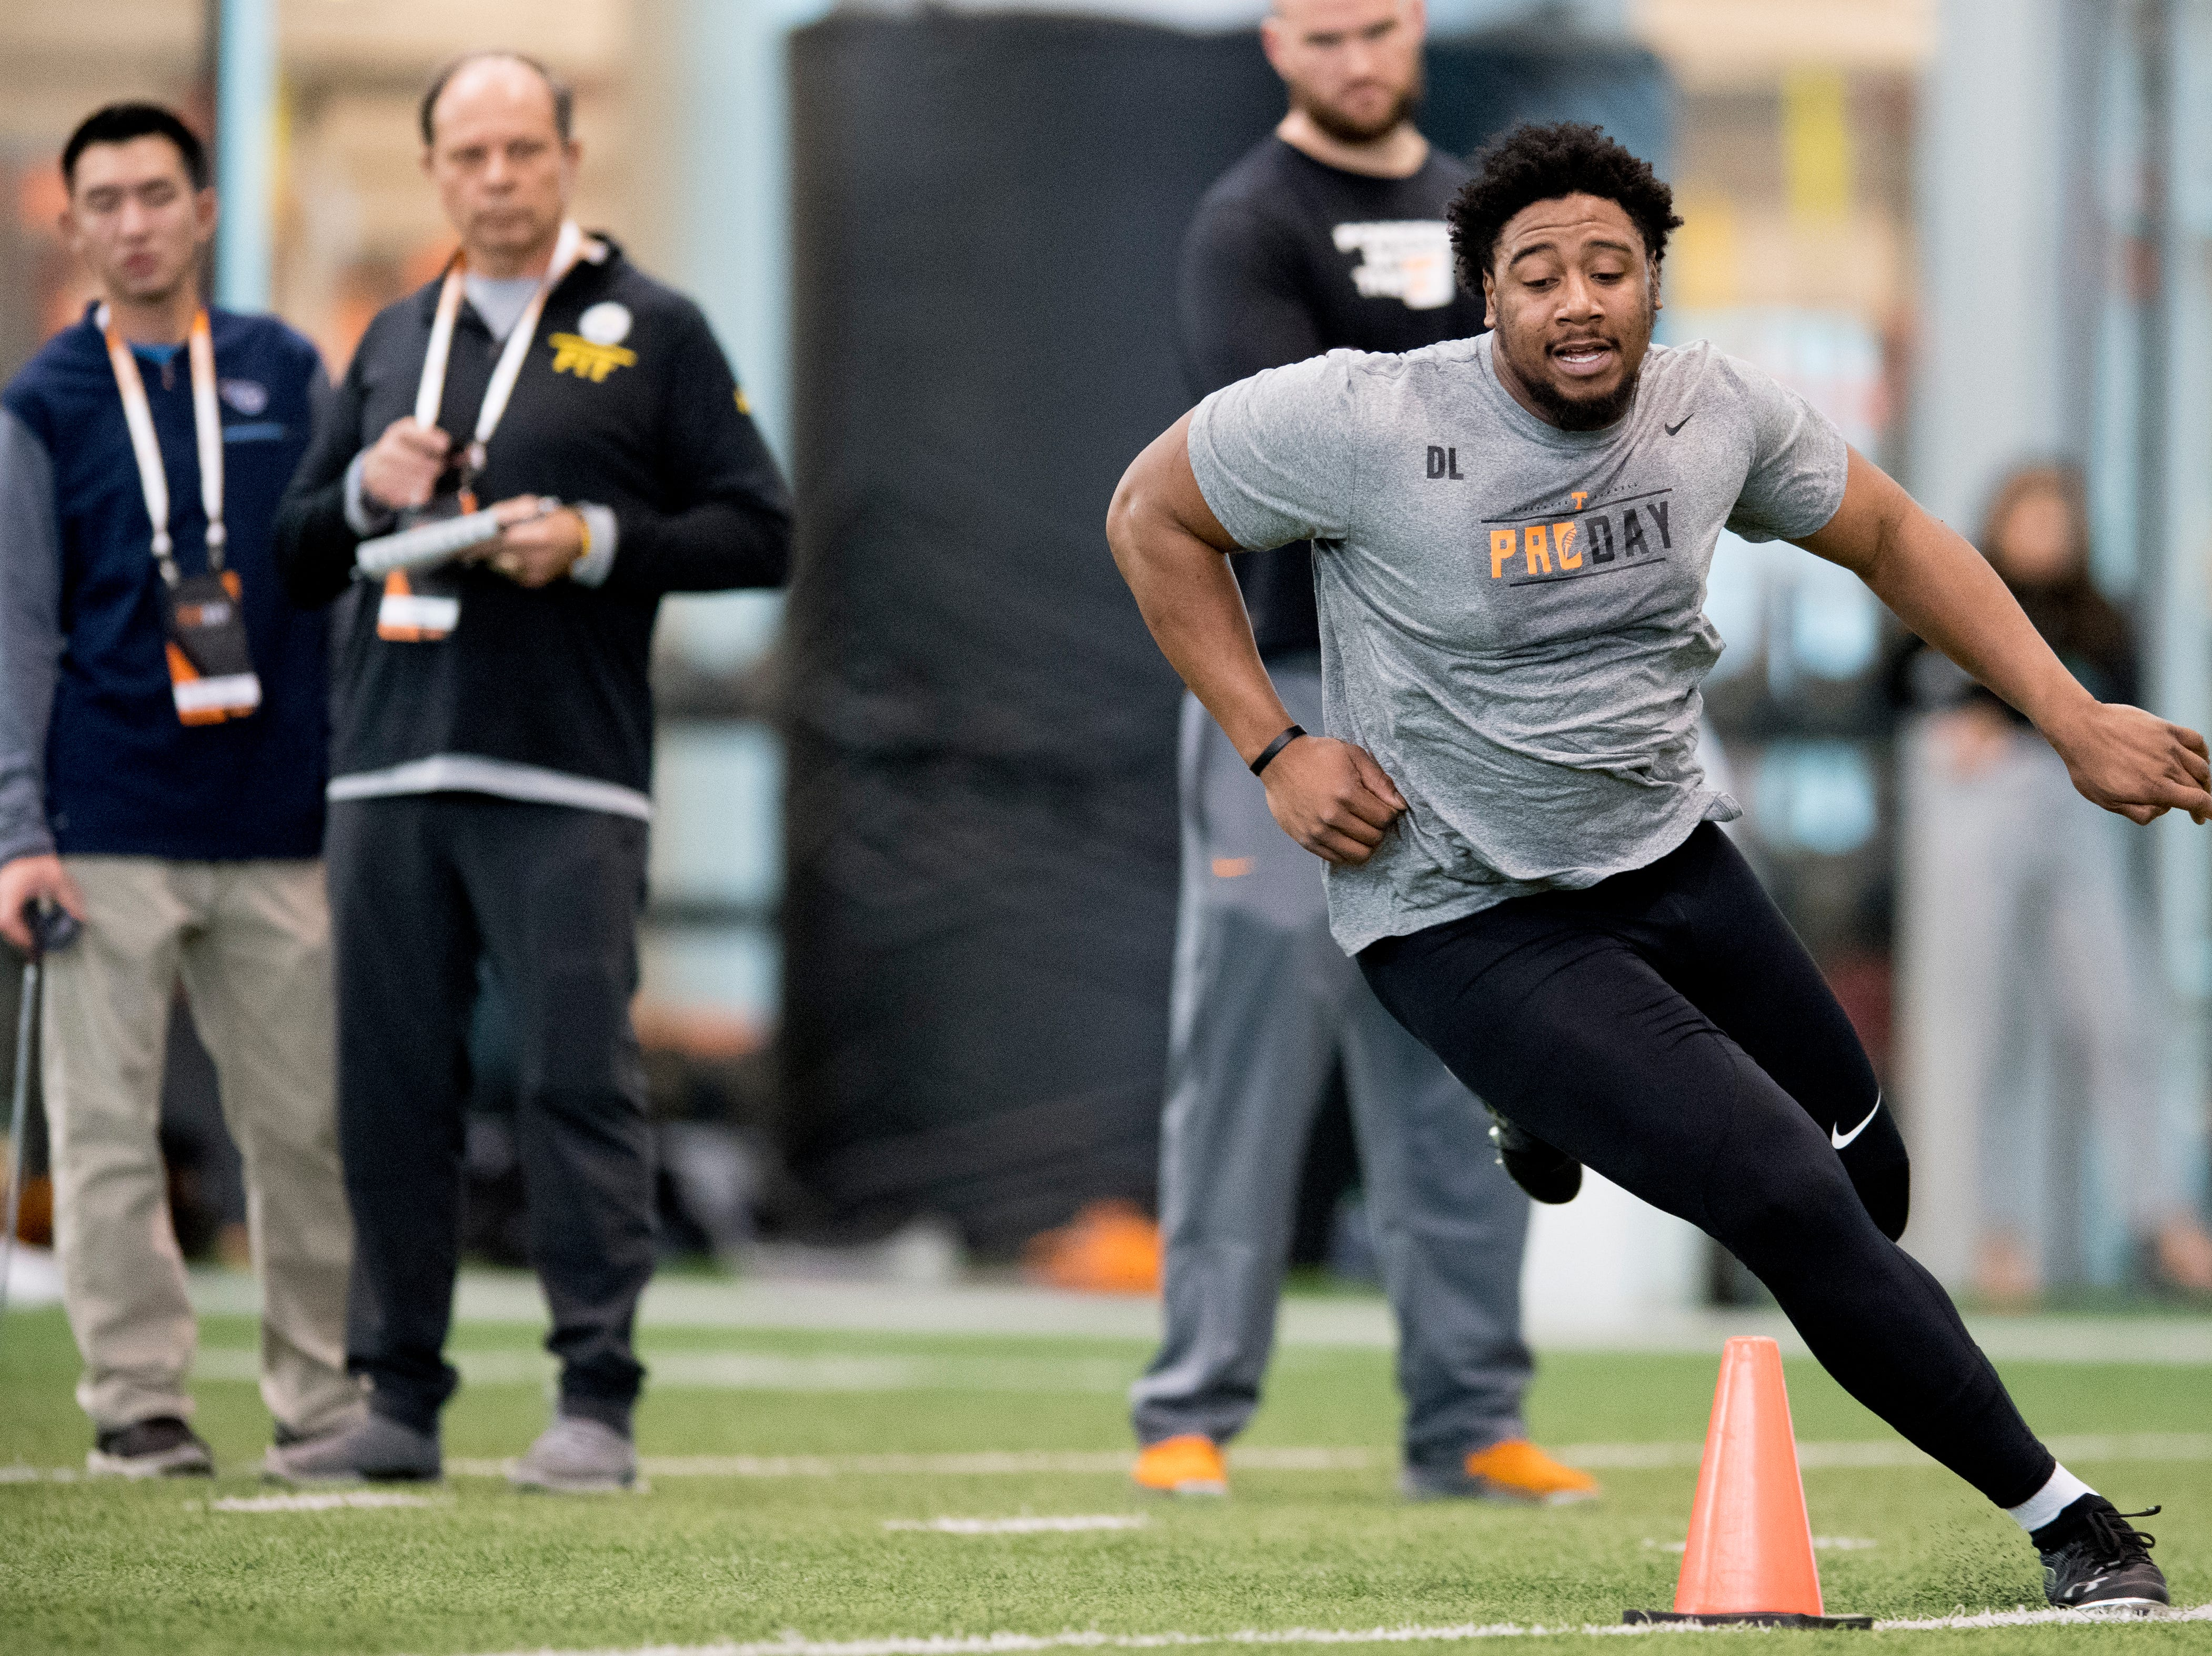 Shy Tuttle does the three-cone-drill at Tennessee Pro Day at Anderson Training Facility in Knoxville, Tennessee on Thursday, March 14, 2019. Draft prospects from Tennessee and other schools worked out before NFL scouts.